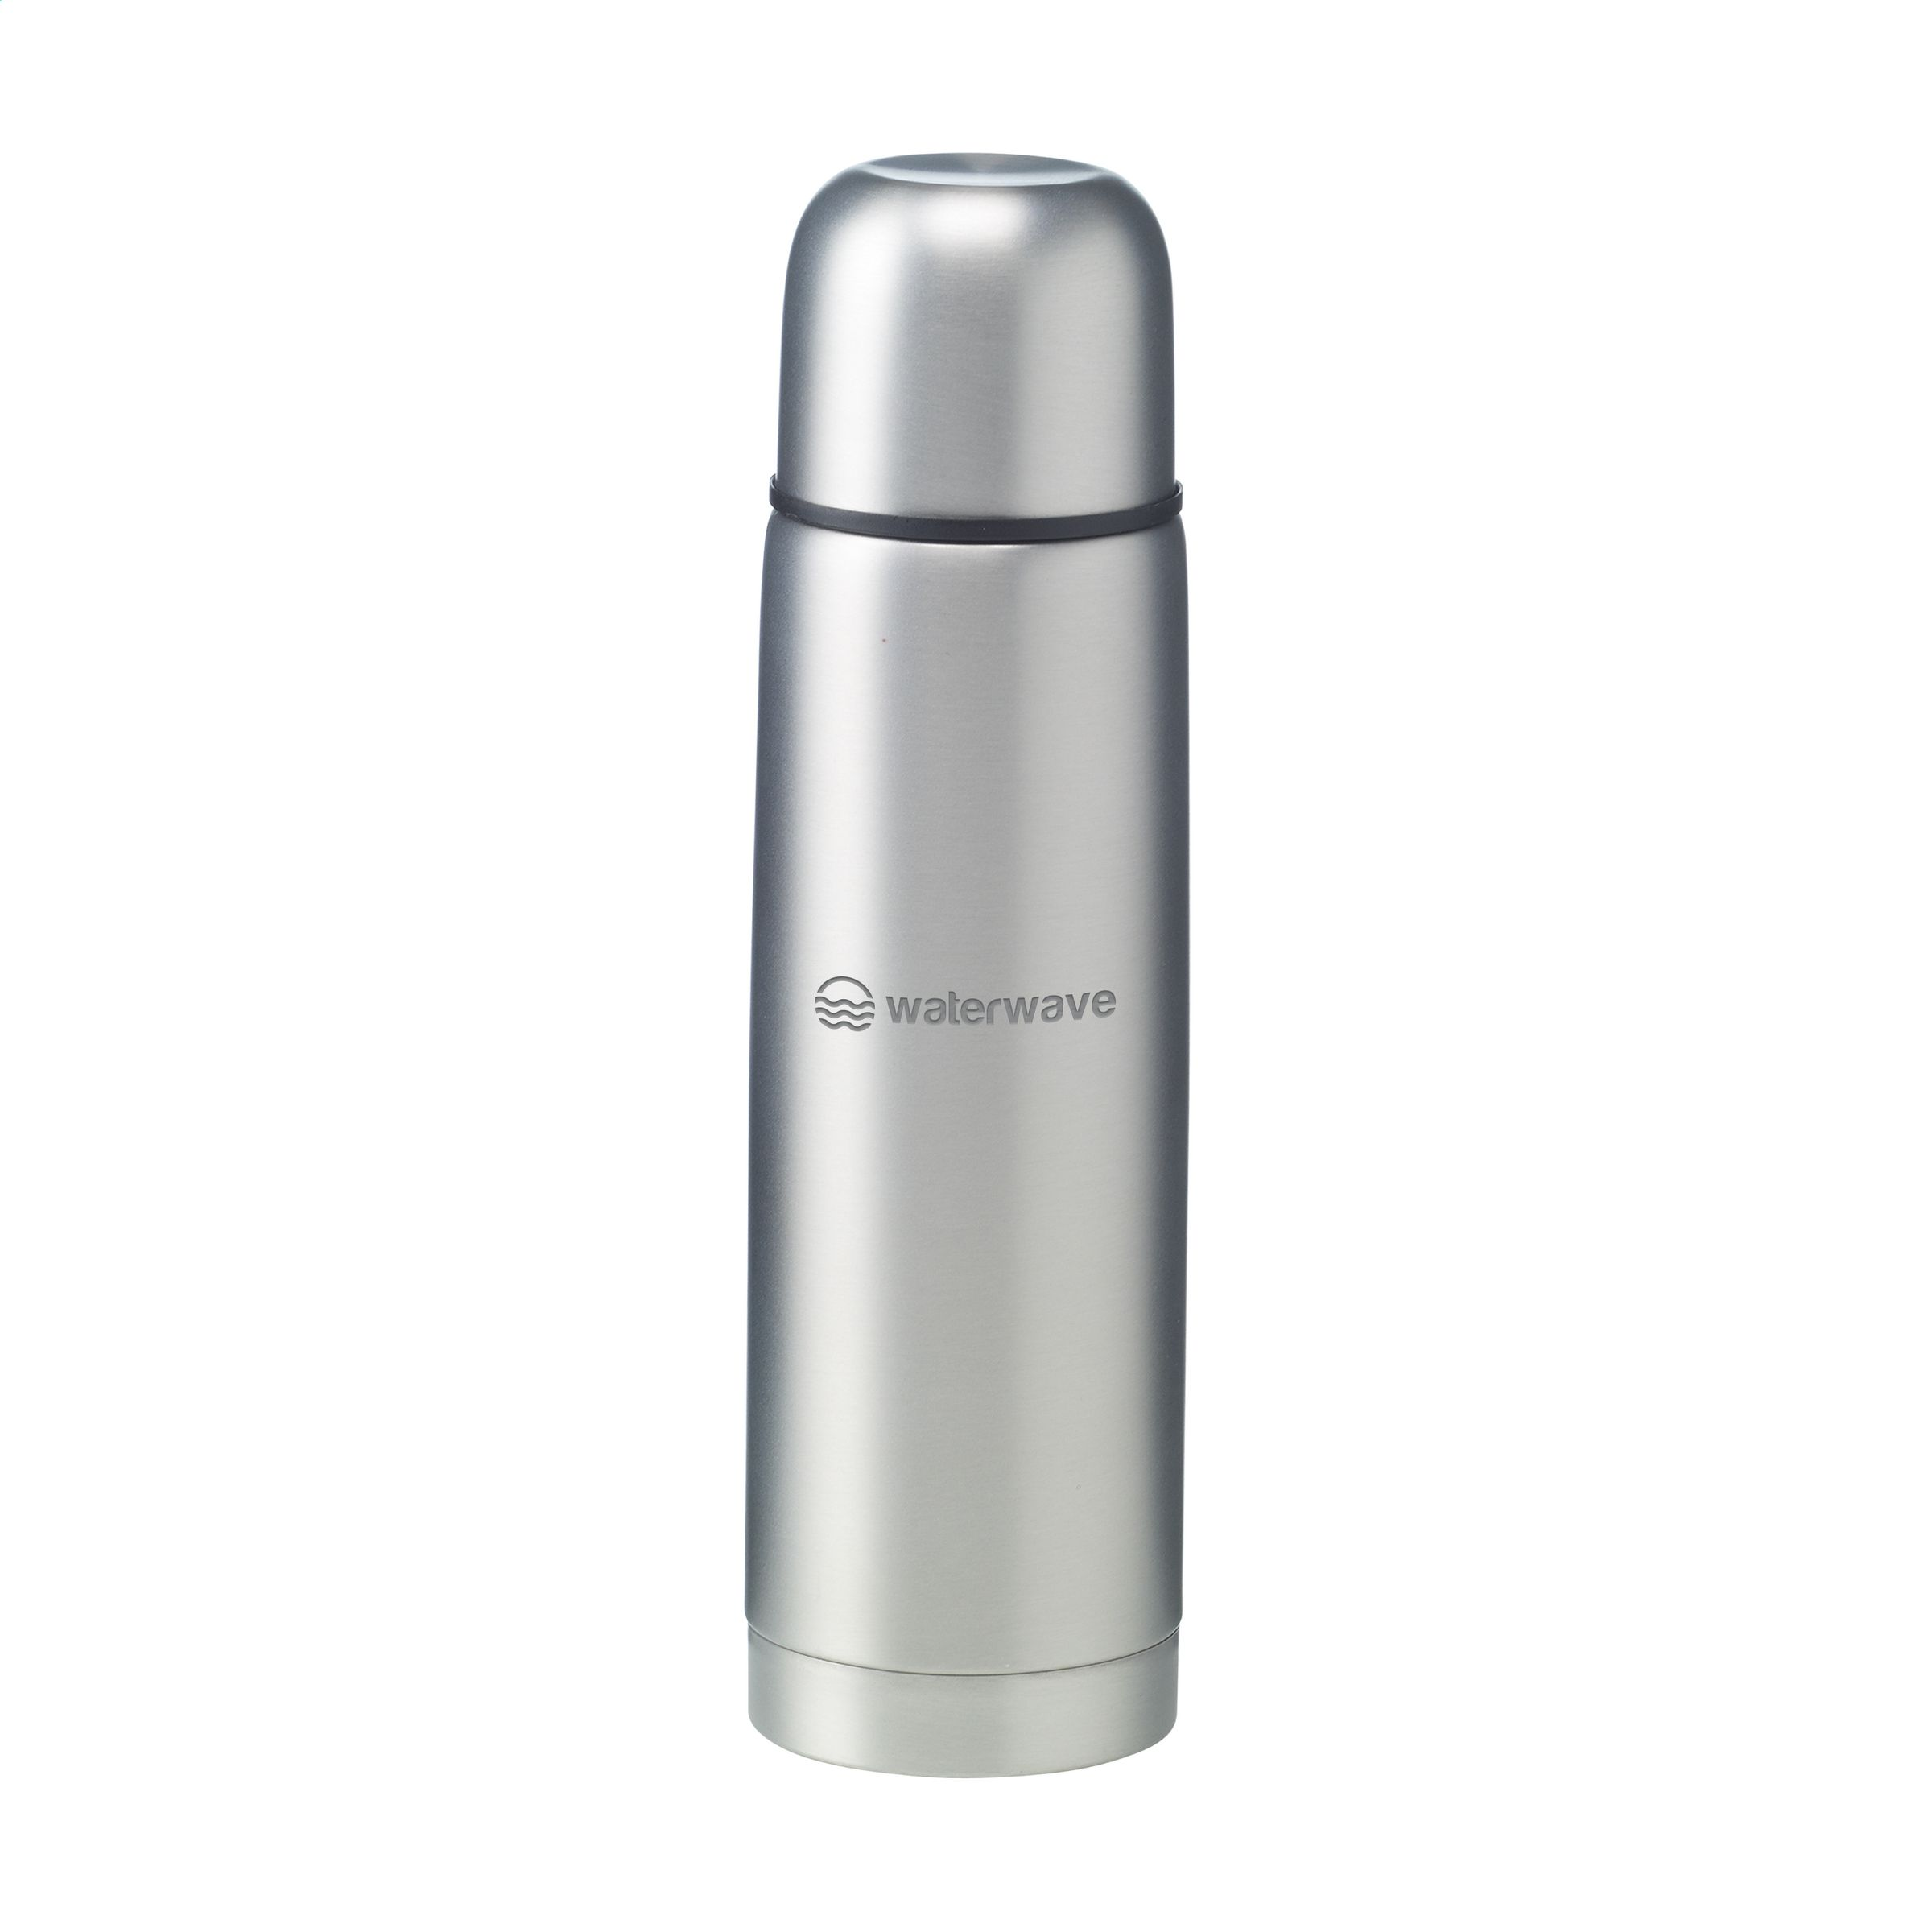 FrostedBottle thermo bottle printing